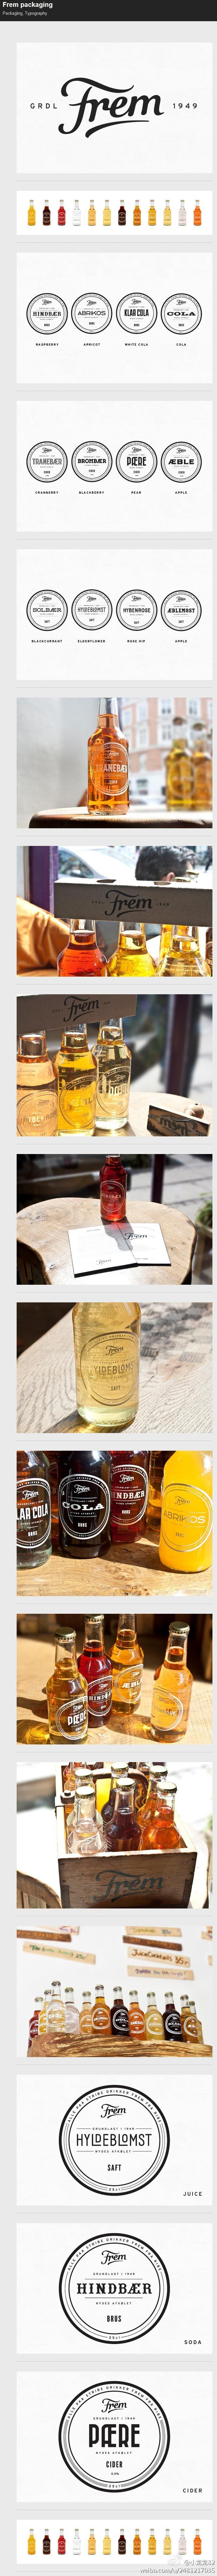 Frem drinks packaging - simple and effective, great use of clear labels to show off the subtle colour of the liquid